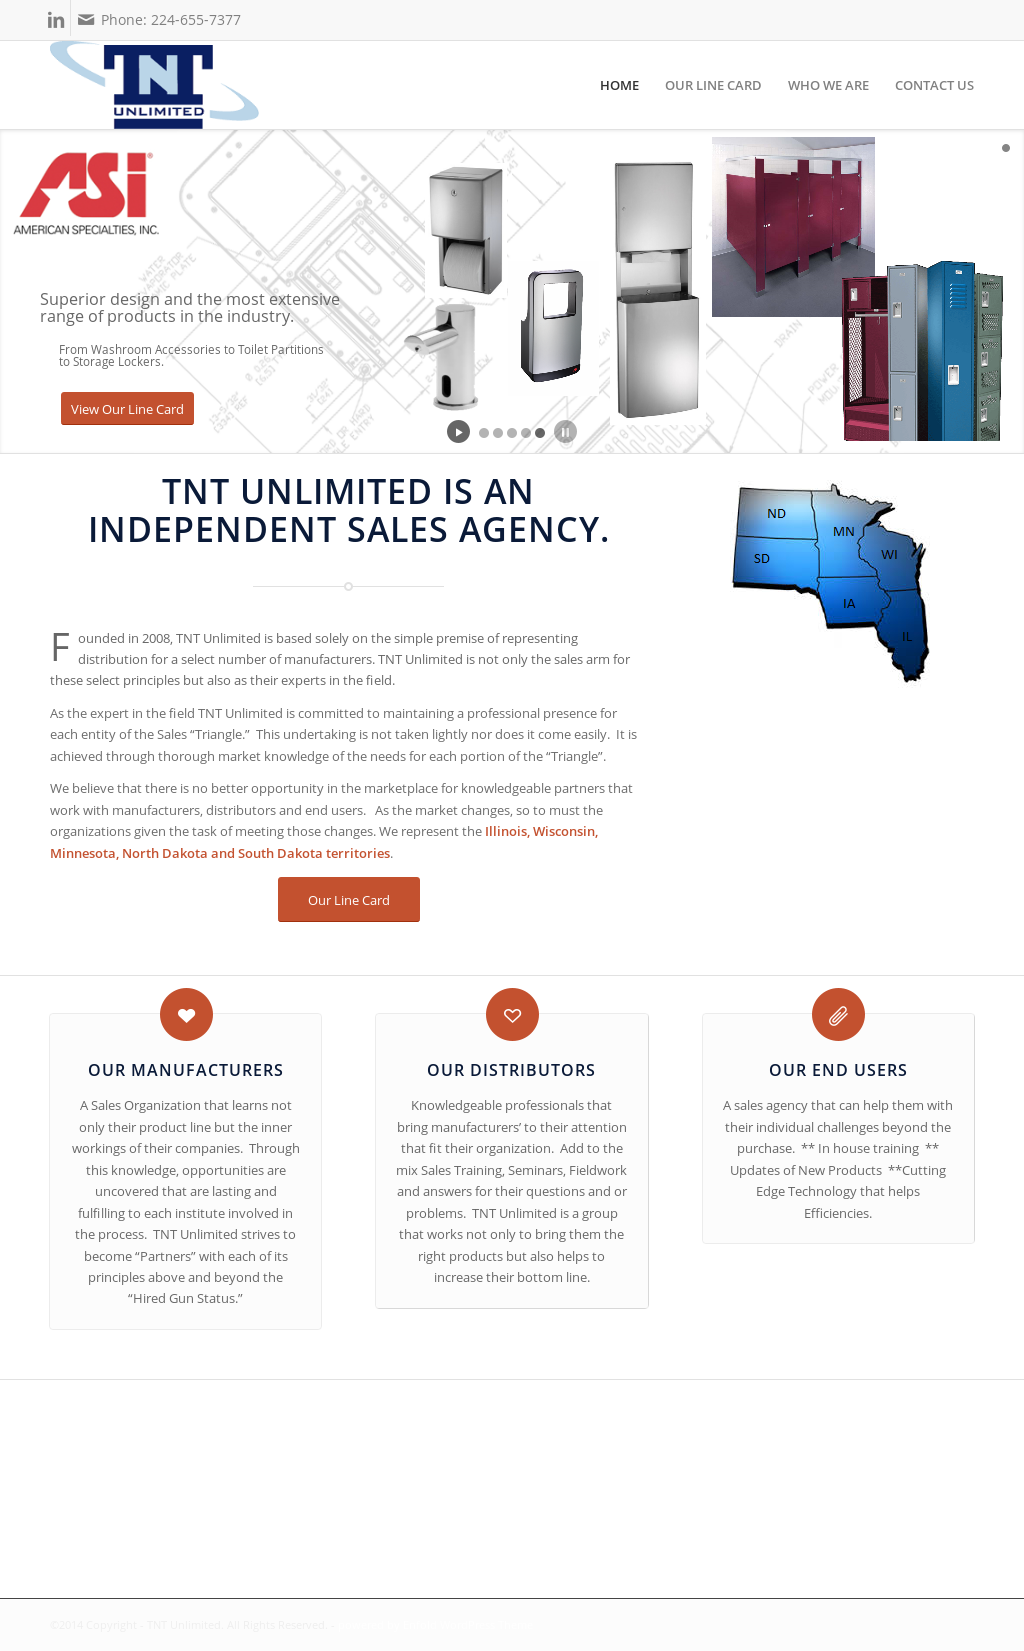 Tnt Unlimited Competitors, Revenue and Employees - Owler Company Profile